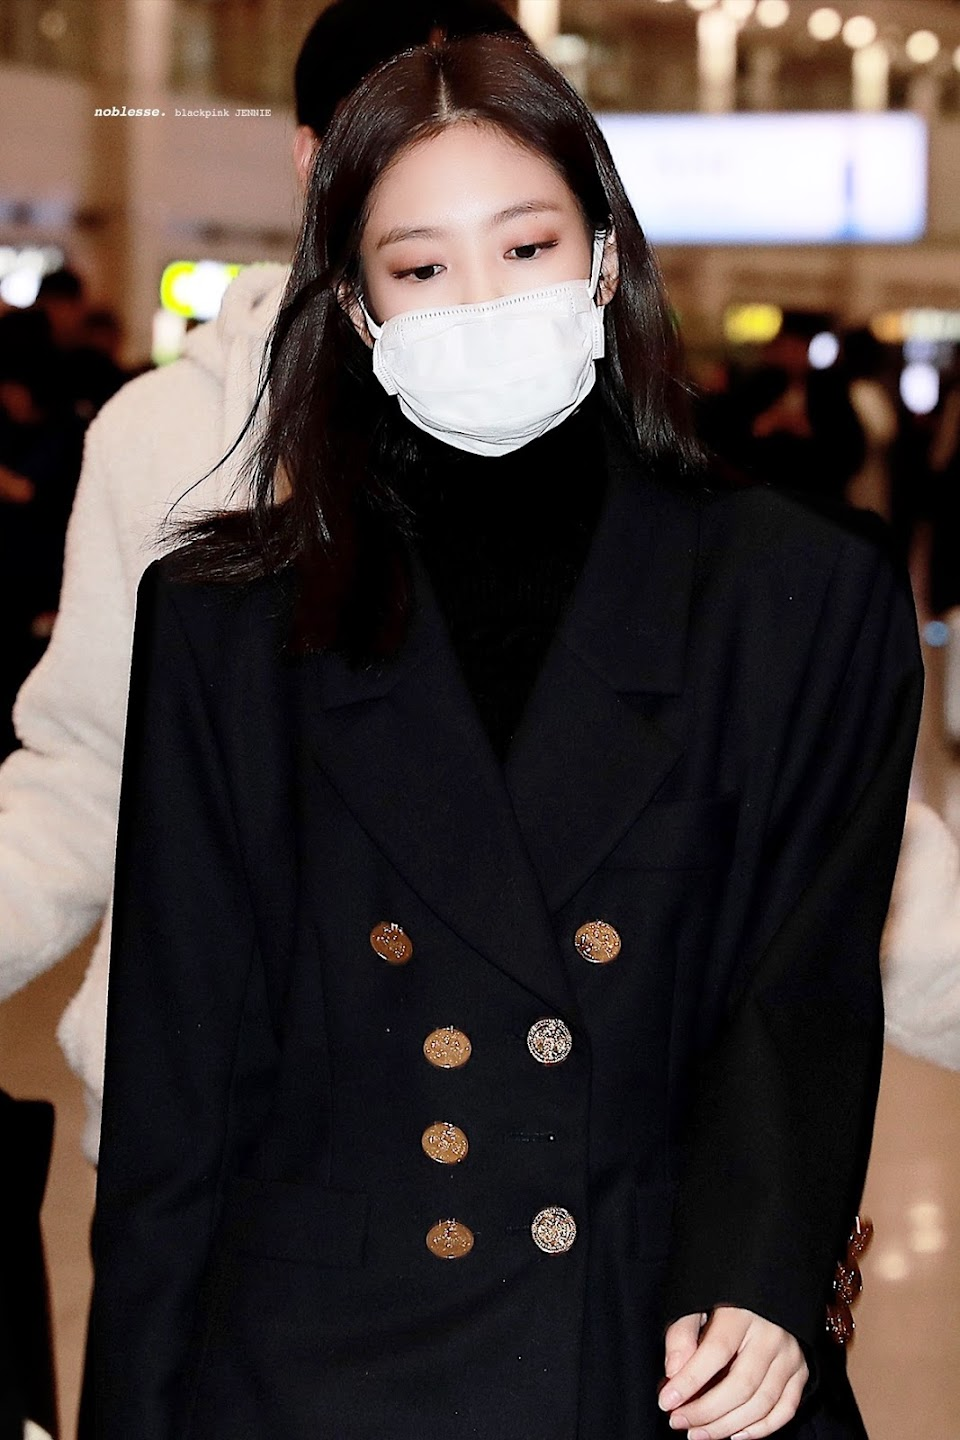 blackpink jennie airport fashion 2019 7